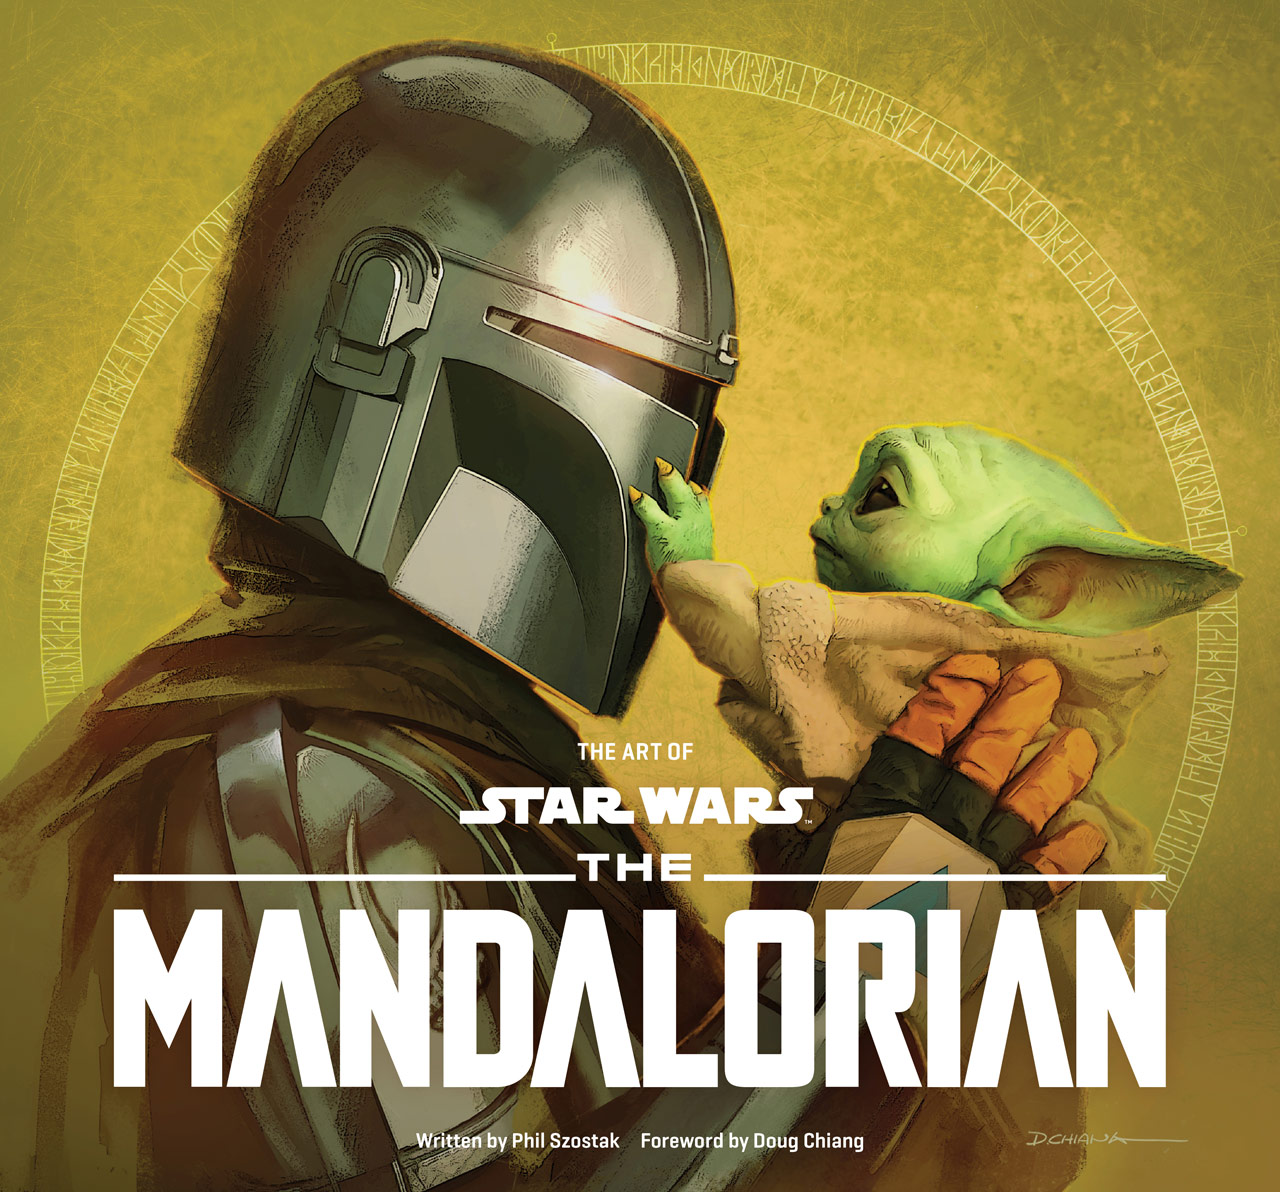 The Art of Star Wars: The Mandalorian stagione 2